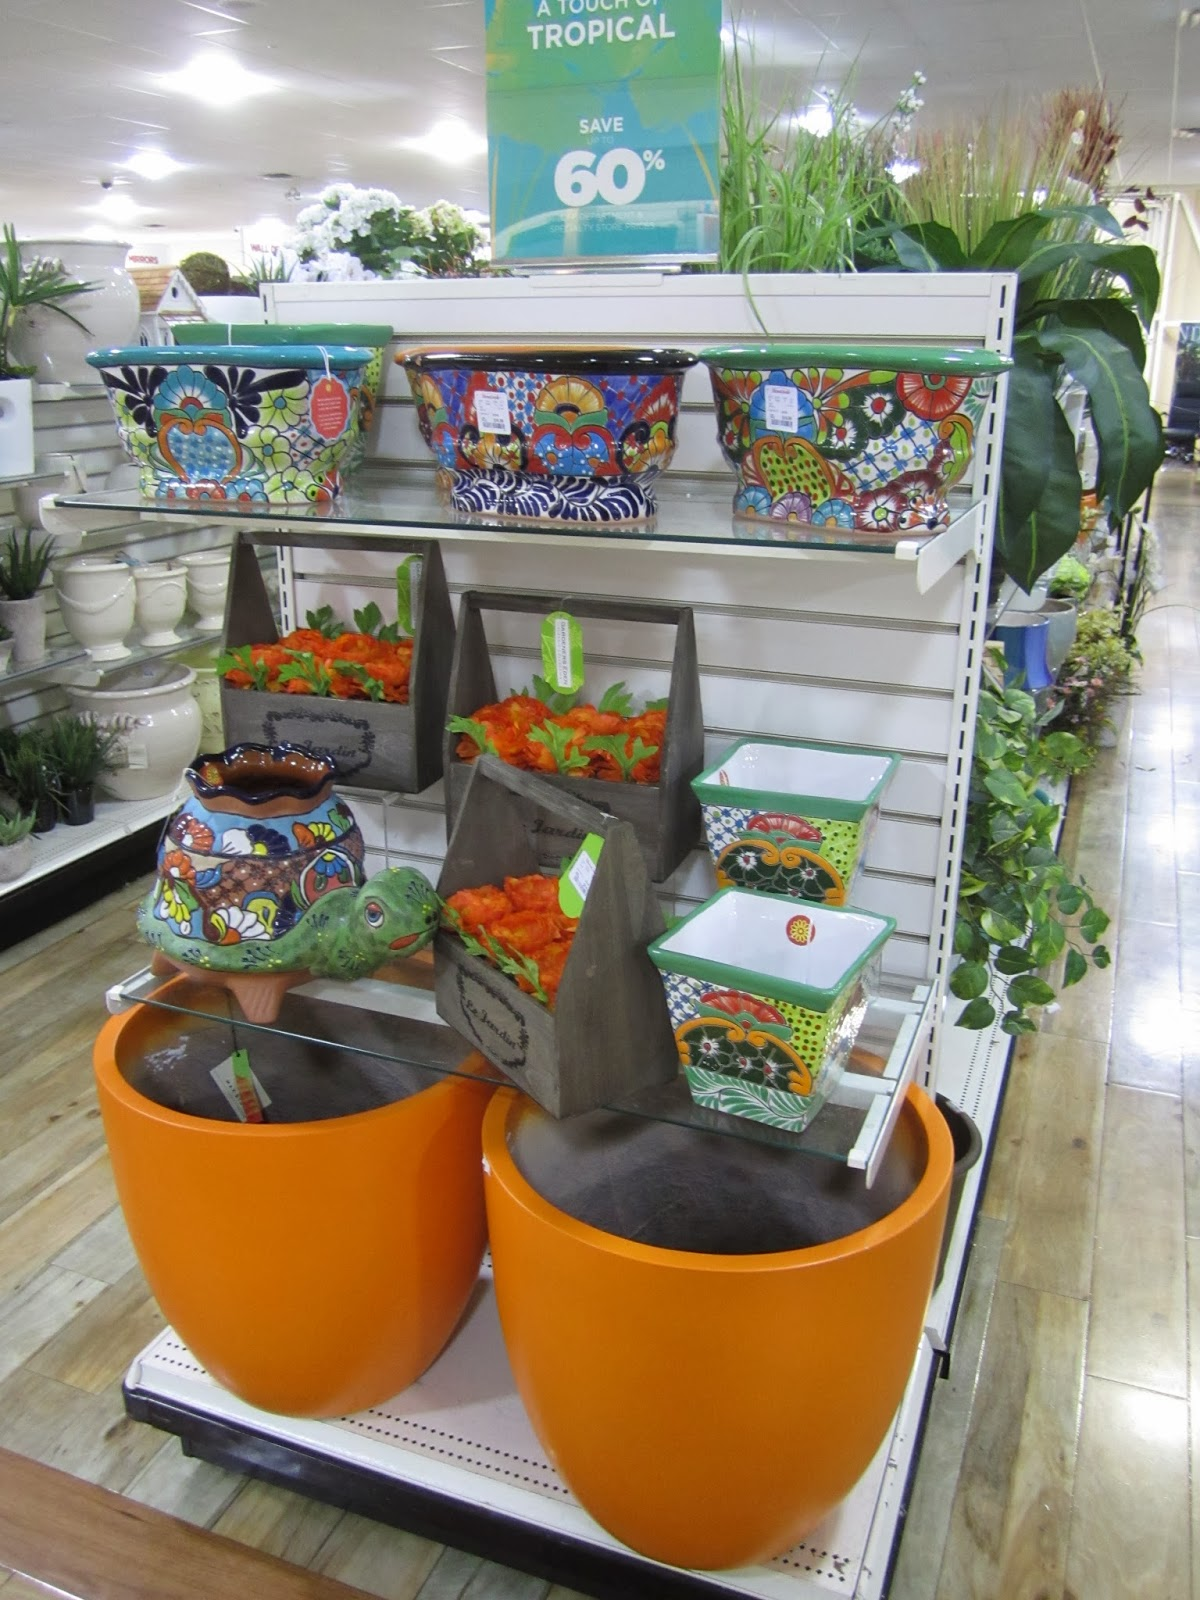 TJMaxx Homegoods Heaven  Garden Stools  Planters and Decor for Spring  plus  the African Bazaar is back. Inspire Bohemia  TJMaxx Homegoods Heaven  Garden Stools  Planters